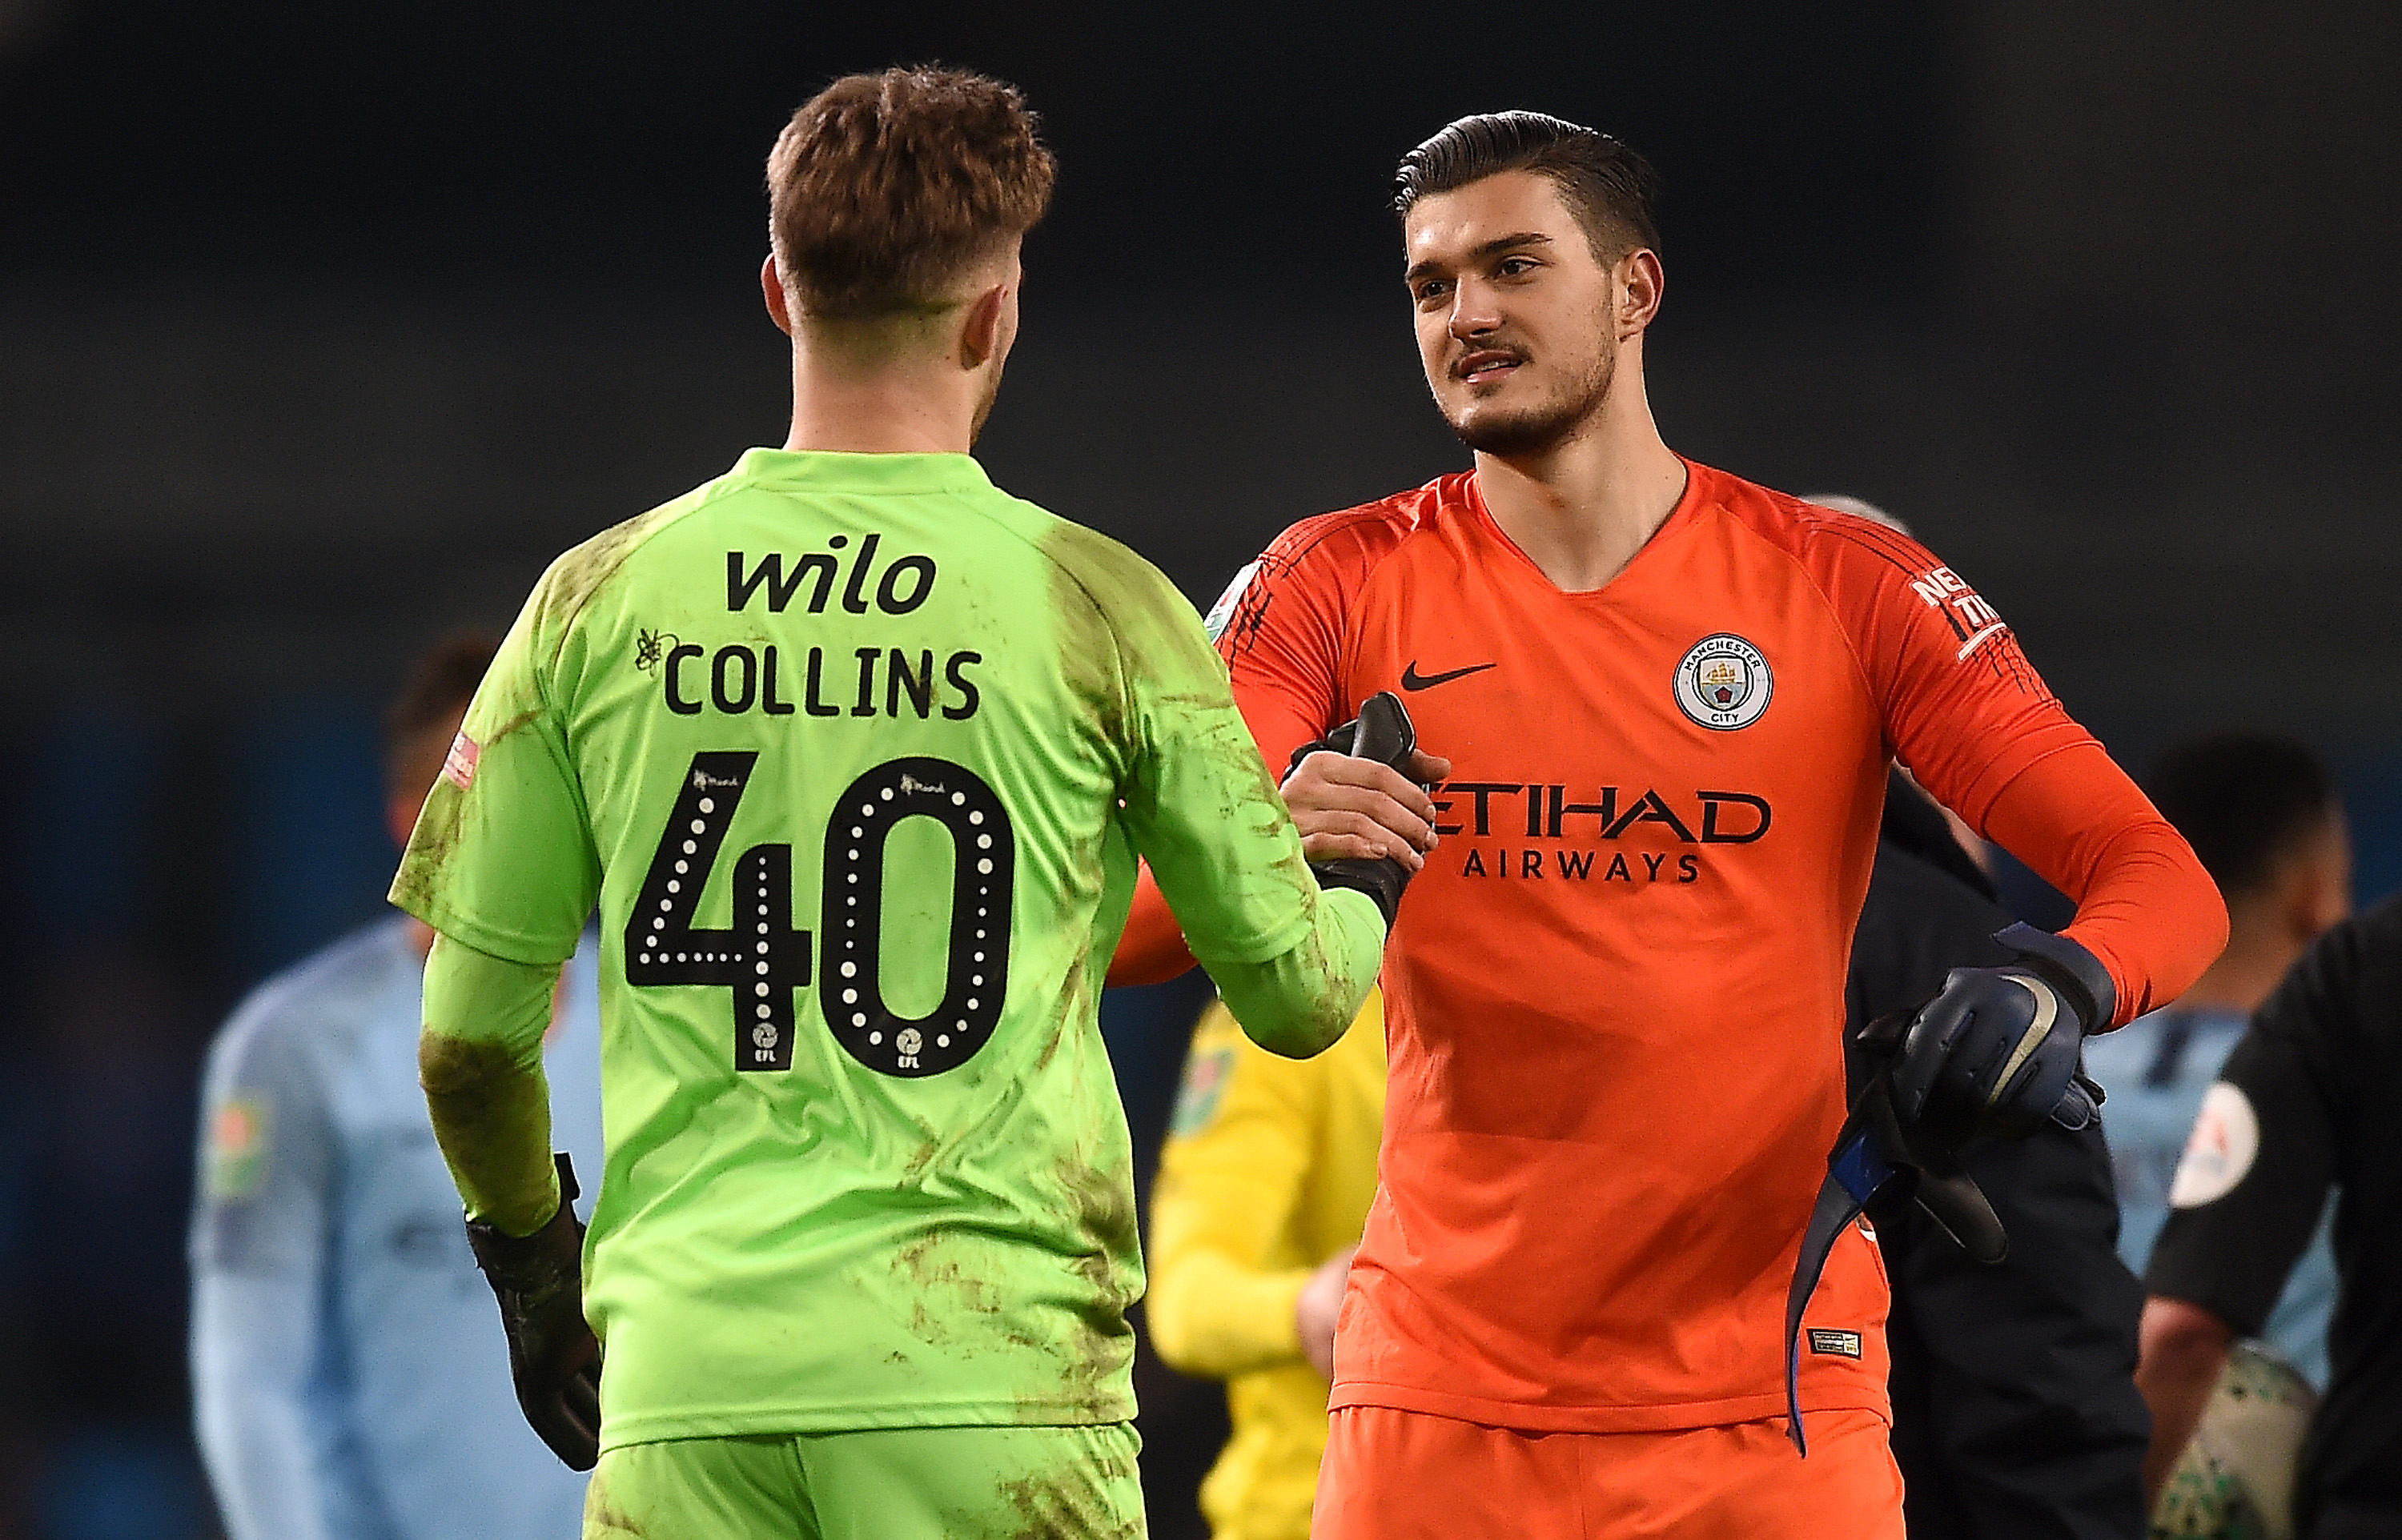 Burton Albion vs Manchester City, EFL Cup Semifinals – Second Leg: Team News, Preview and Prediction